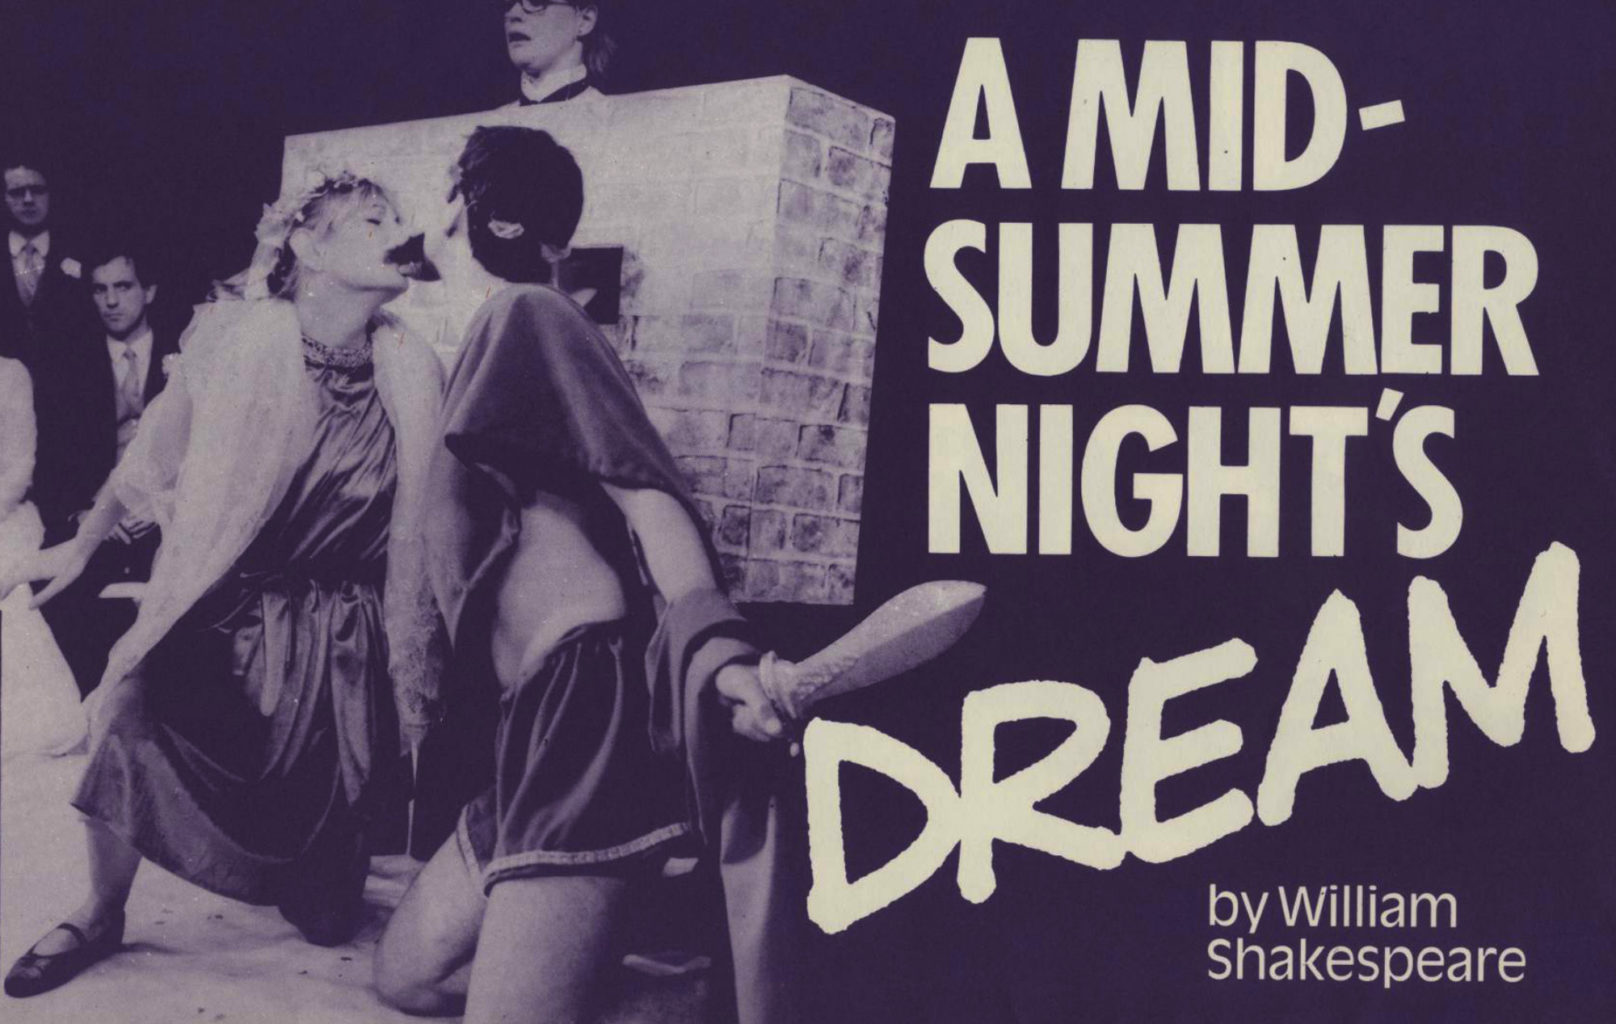 Programme for Cheek by Jowl's 1985 production of A Midsummer Night's Dream